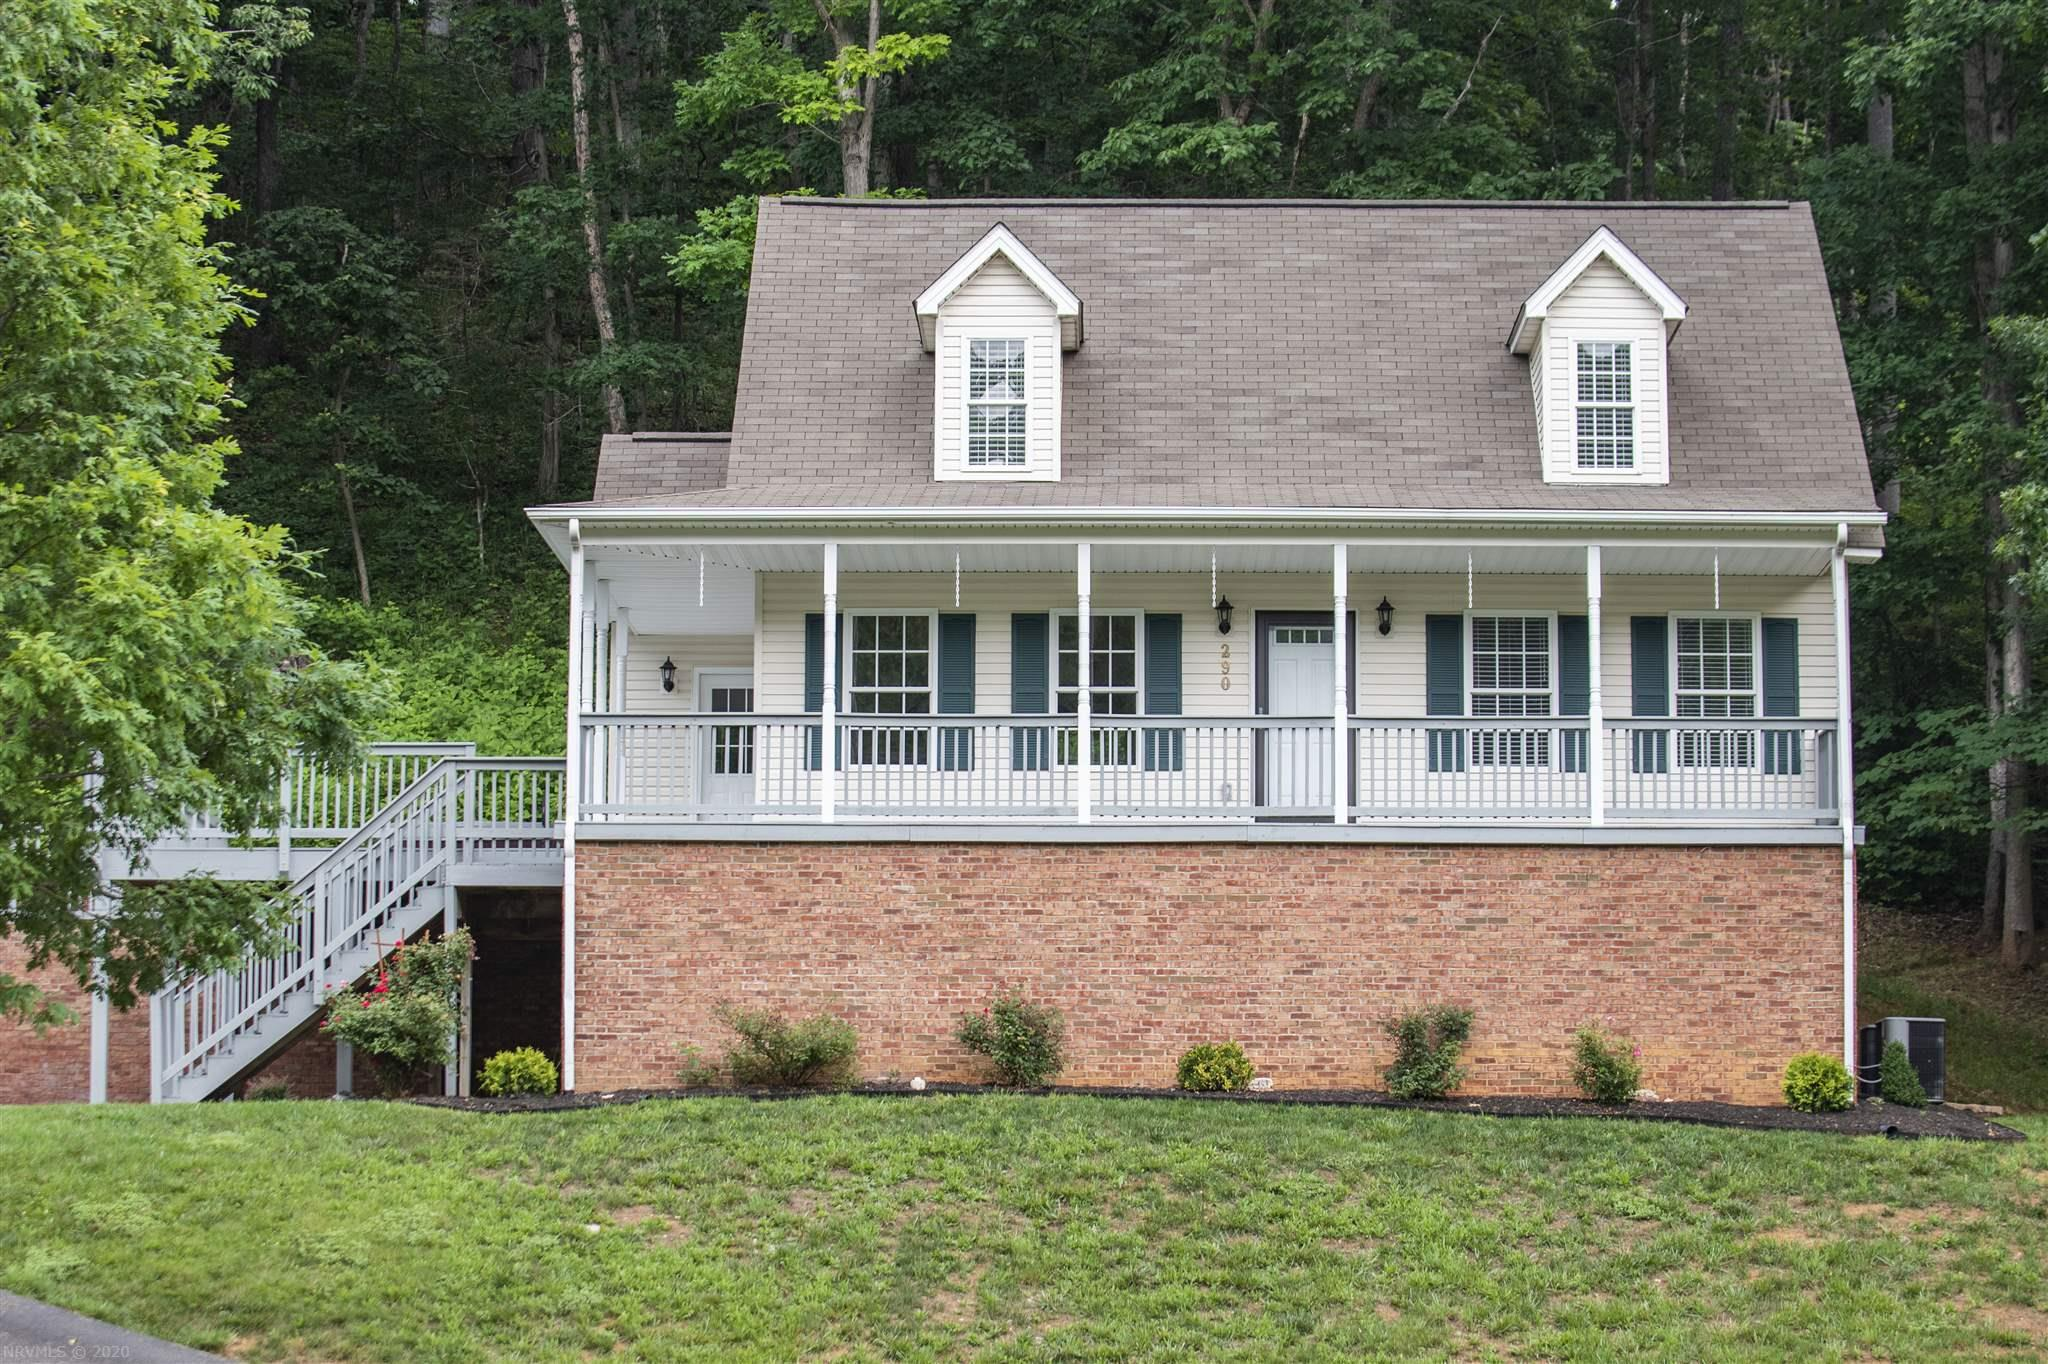 This Charming Christiansburg home sits just inside town limits in a family friendly neighborhood, within walking distance of John Lemley Town Park, and only minutes from shopping, dining, VT and I-81.  You will enjoy the open concept, to include a beautifully updated kitchen and full dining area with bay window, that flows right into the living room.  3 bedrooms and 2.5 baths, Master bedroom w/ En suite bathroom and laundry on the main level.  Partially finished basement, office and bonus room with closet that the current owners used as a non conforming 4th bedroom.  Garage, utility room, and extra attic space gives you plenty of storage.  Step outside onto the large wrap around front porch that leads to 24' x 15' deck with hot tub, perfect for entertaining or just relaxing after a tough day. Many upgrades, freshly painted and professionally cleaned.  Absolutely, move in ready!